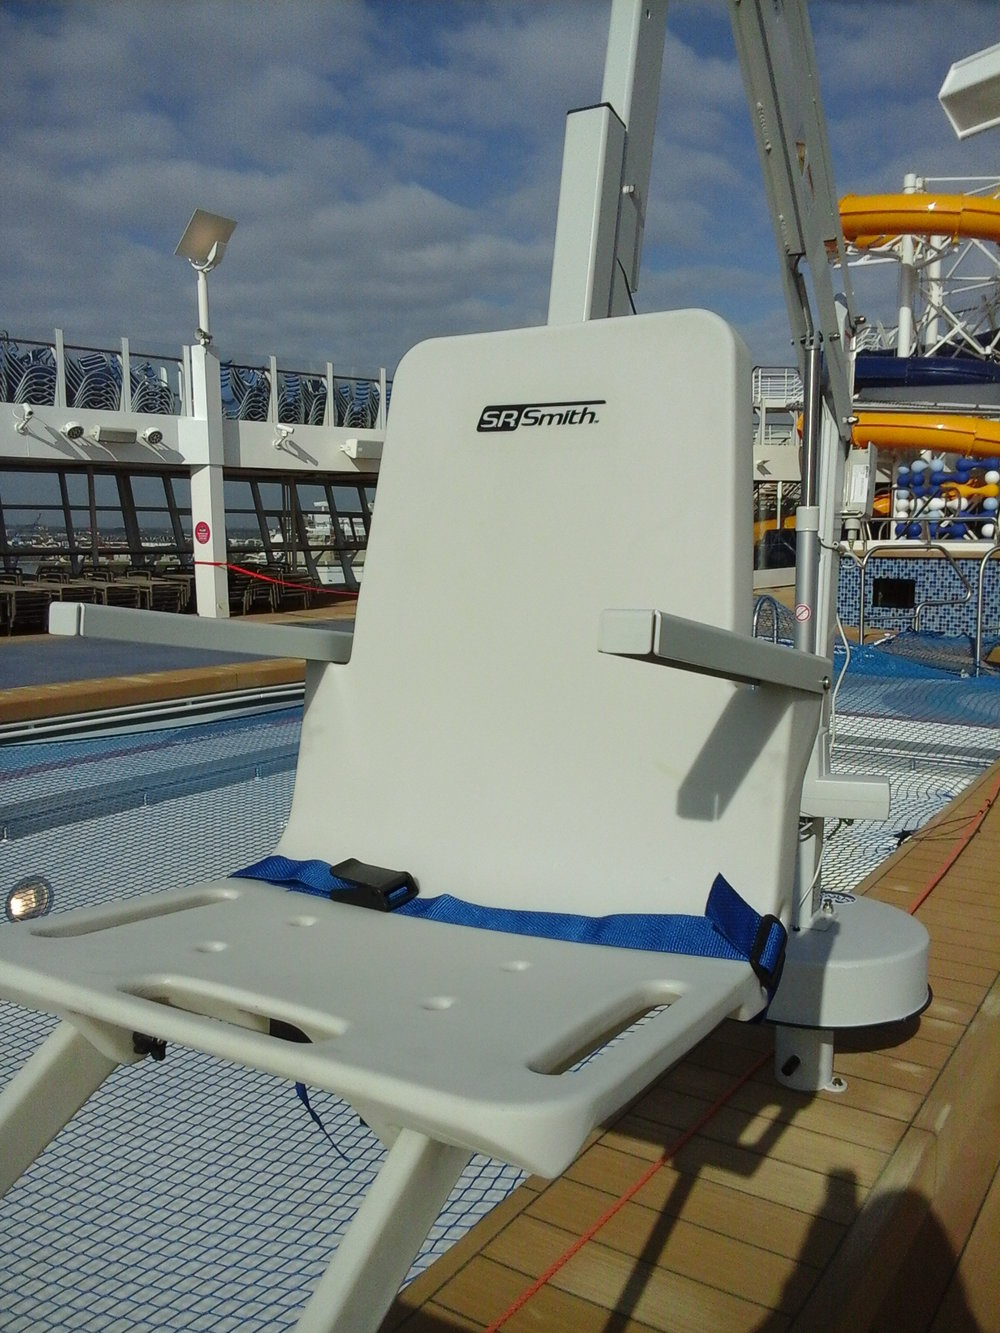 splash-rmt-pool-hoist-seat-cruise-ship-diability-access.jpg